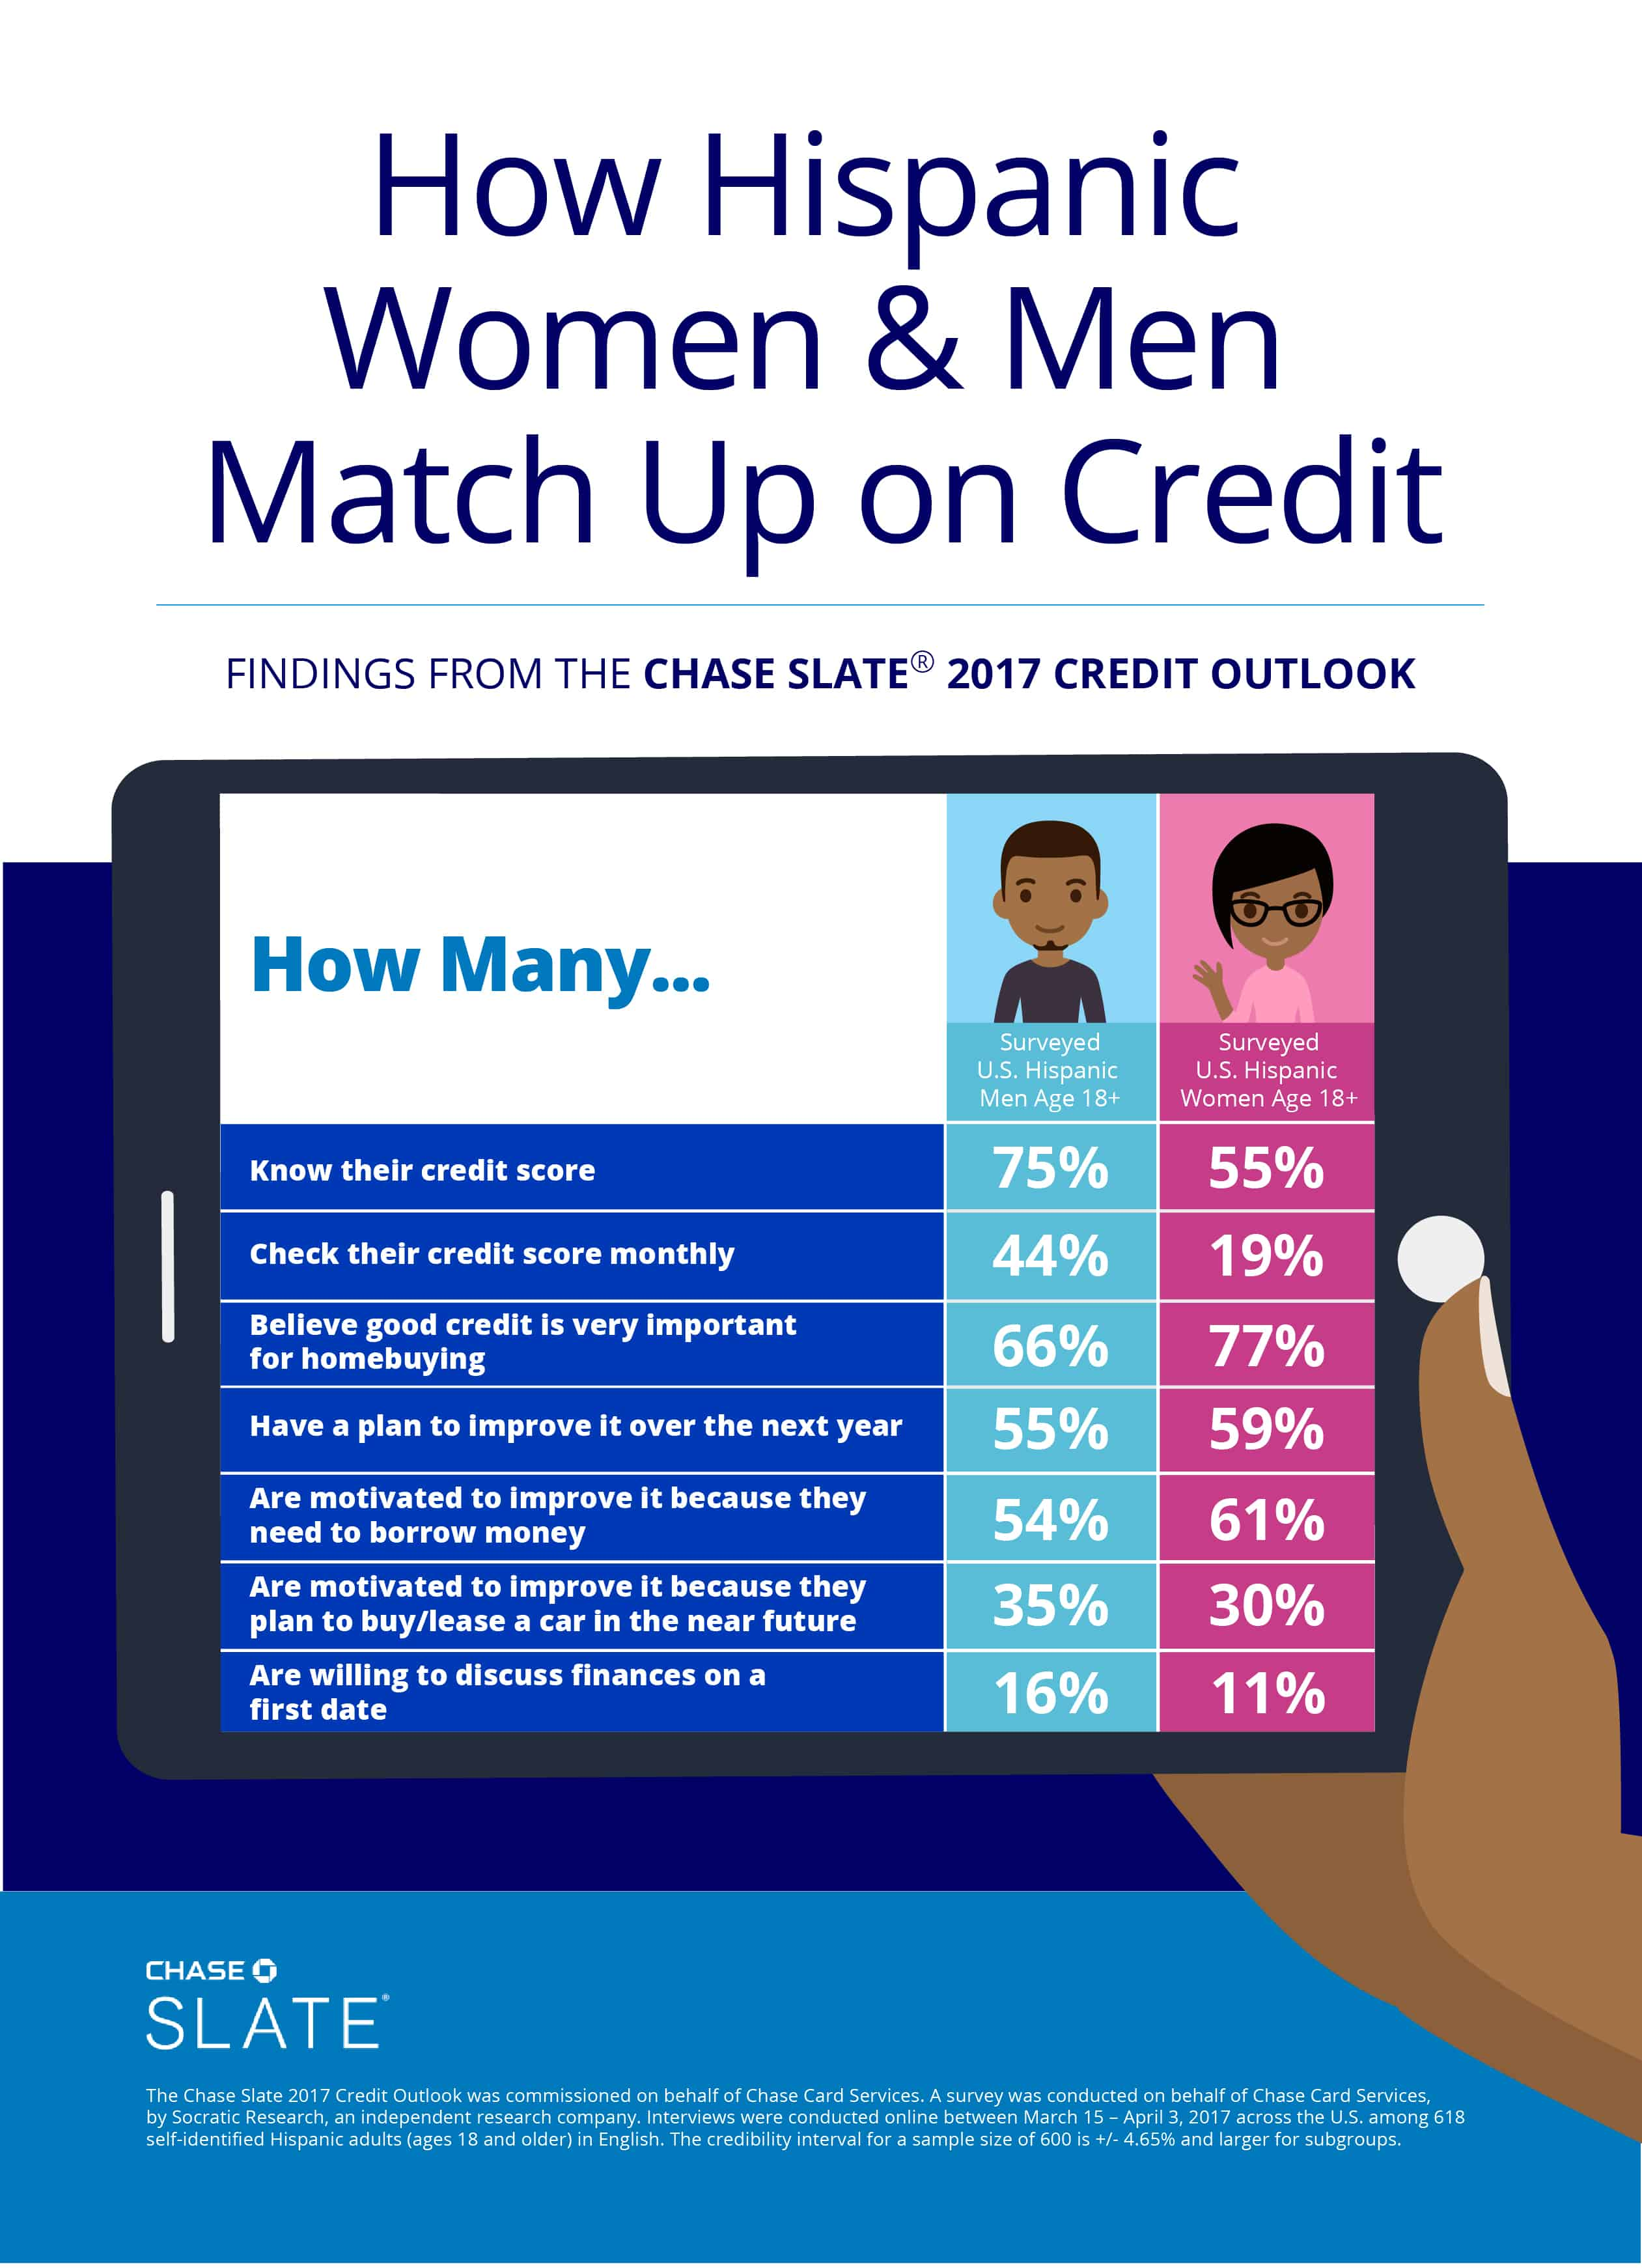 Your Credit Score Matters: Why You Should Start Improving It!